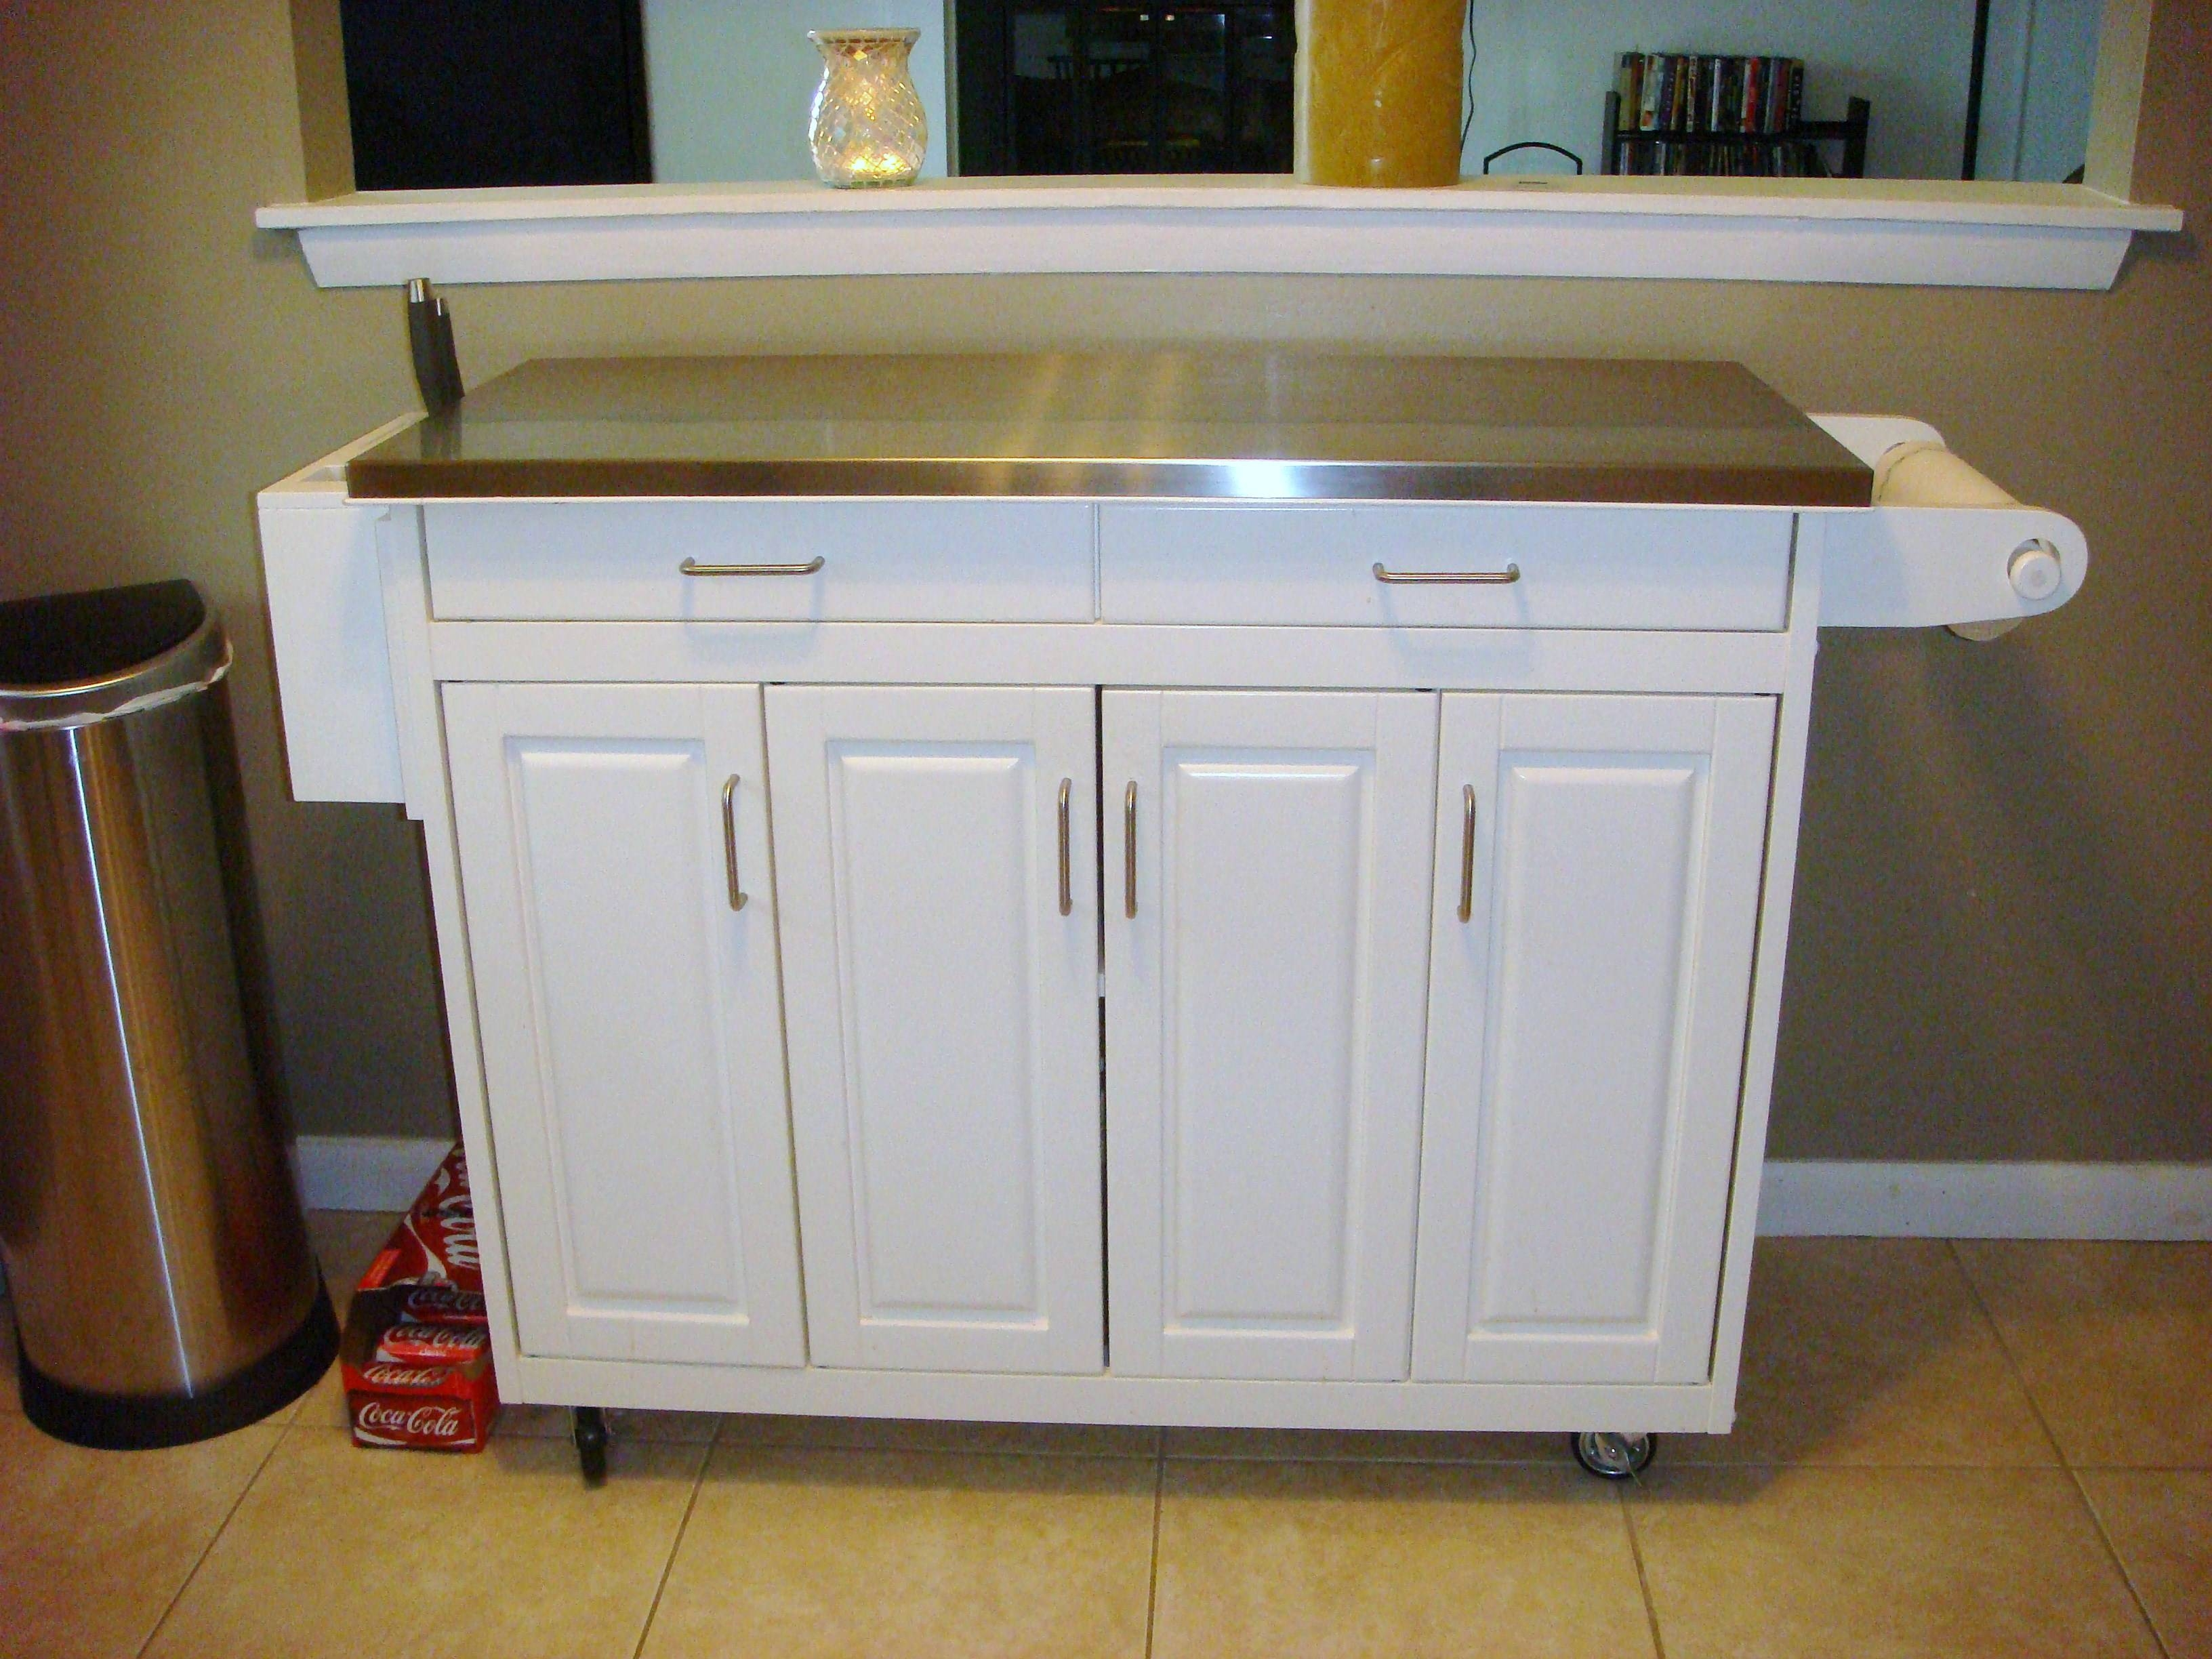 Decorative Kitchen Sideboard Buffet   All Home Decorations With Regard To Kitchen Sideboards Buffets (View 5 of 15)